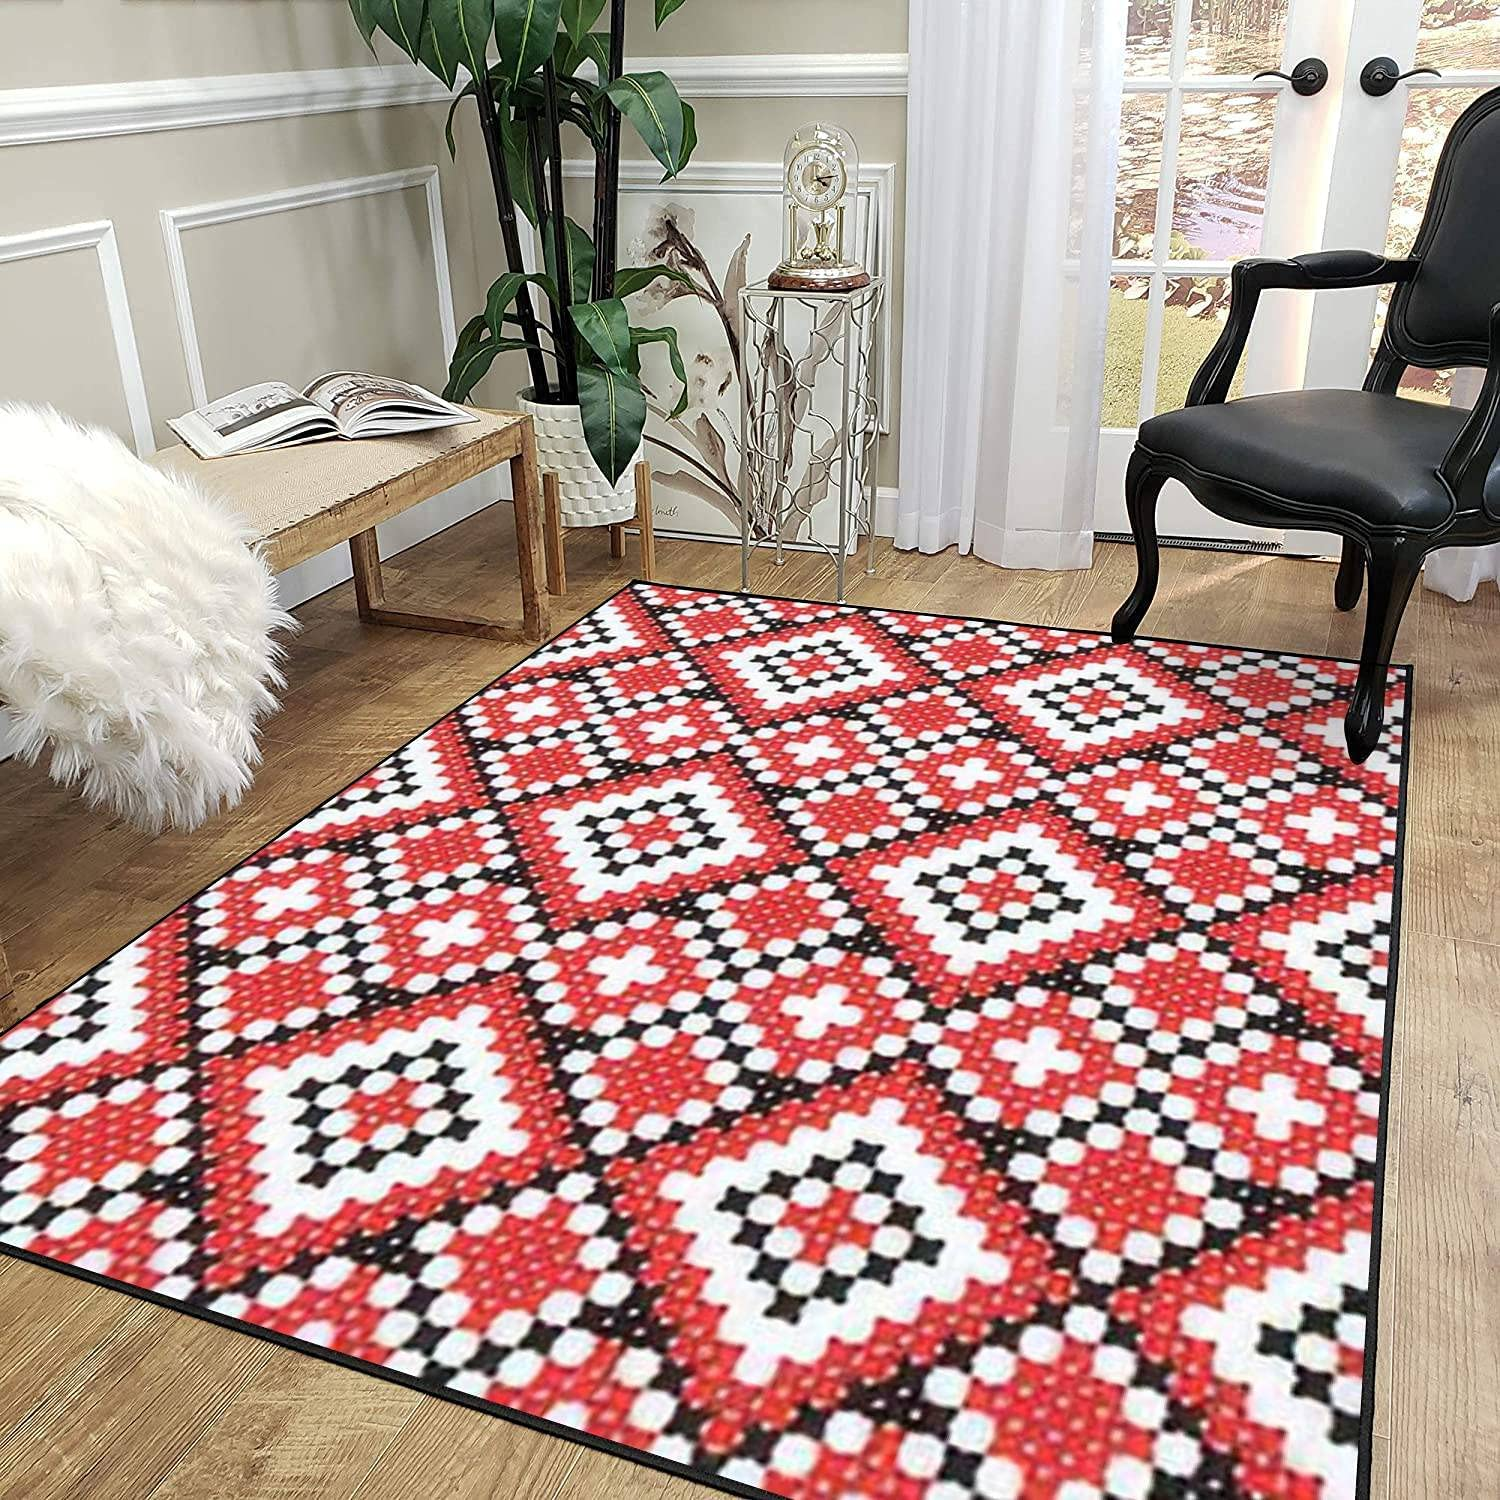 Challenge the lowest price Rug Pad Seamless Super sale period limited Embroidered Good Handmade Like Cross Stitch Eth